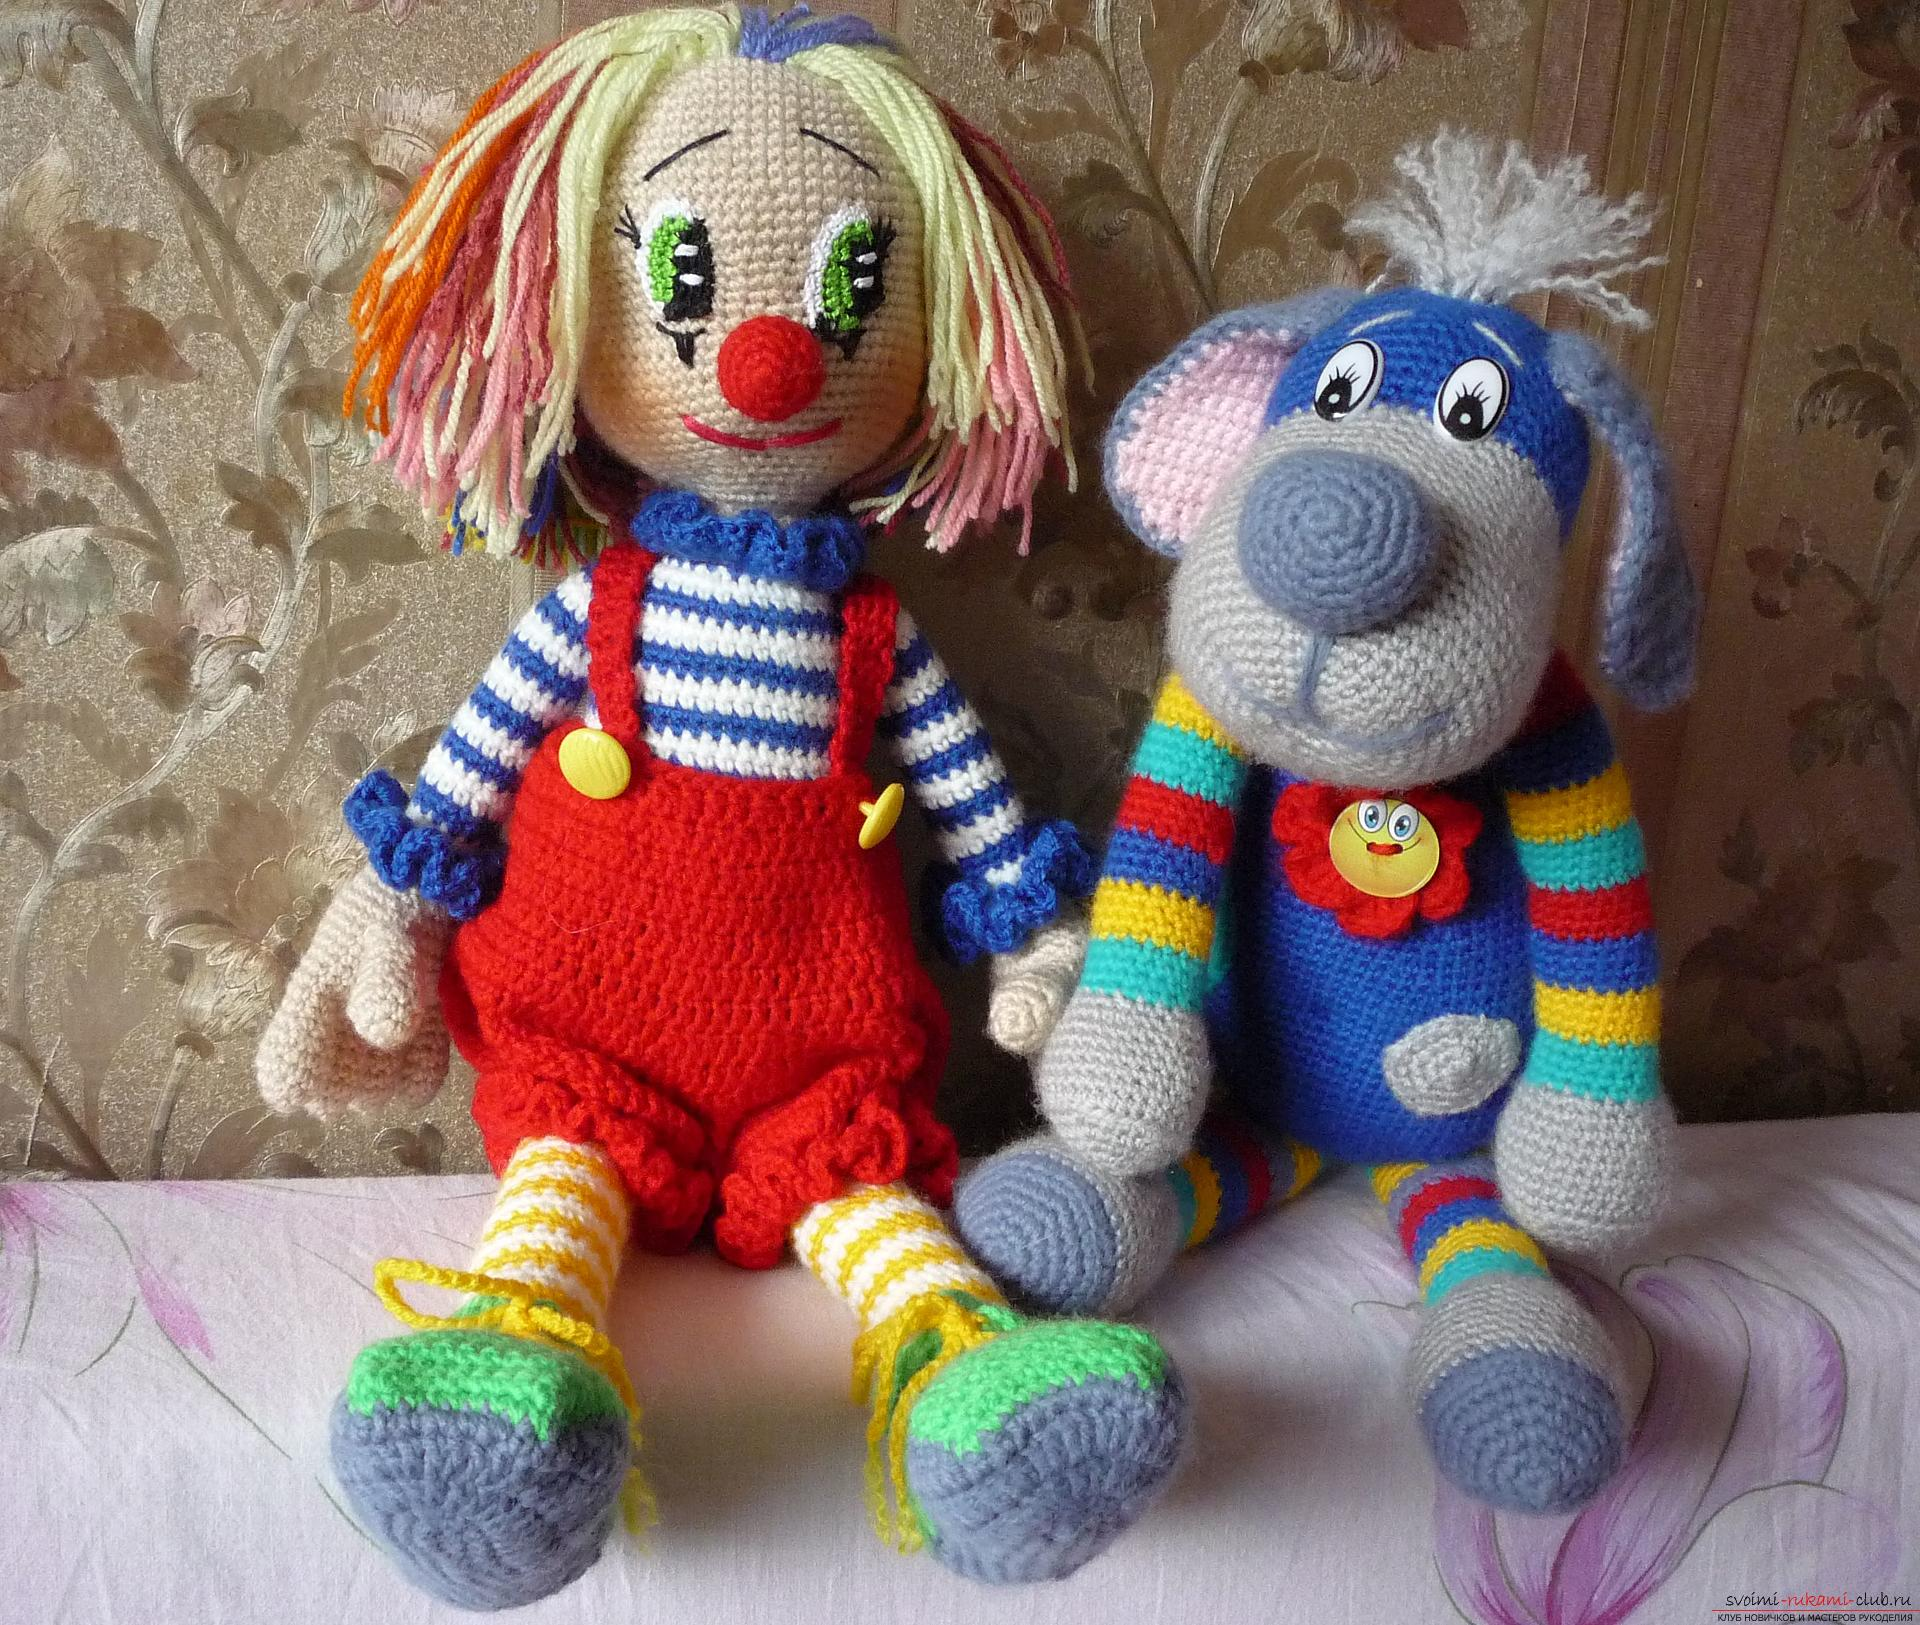 Detailed pictures of a clown toy crocheted from multi-colored yarn. Photo №5